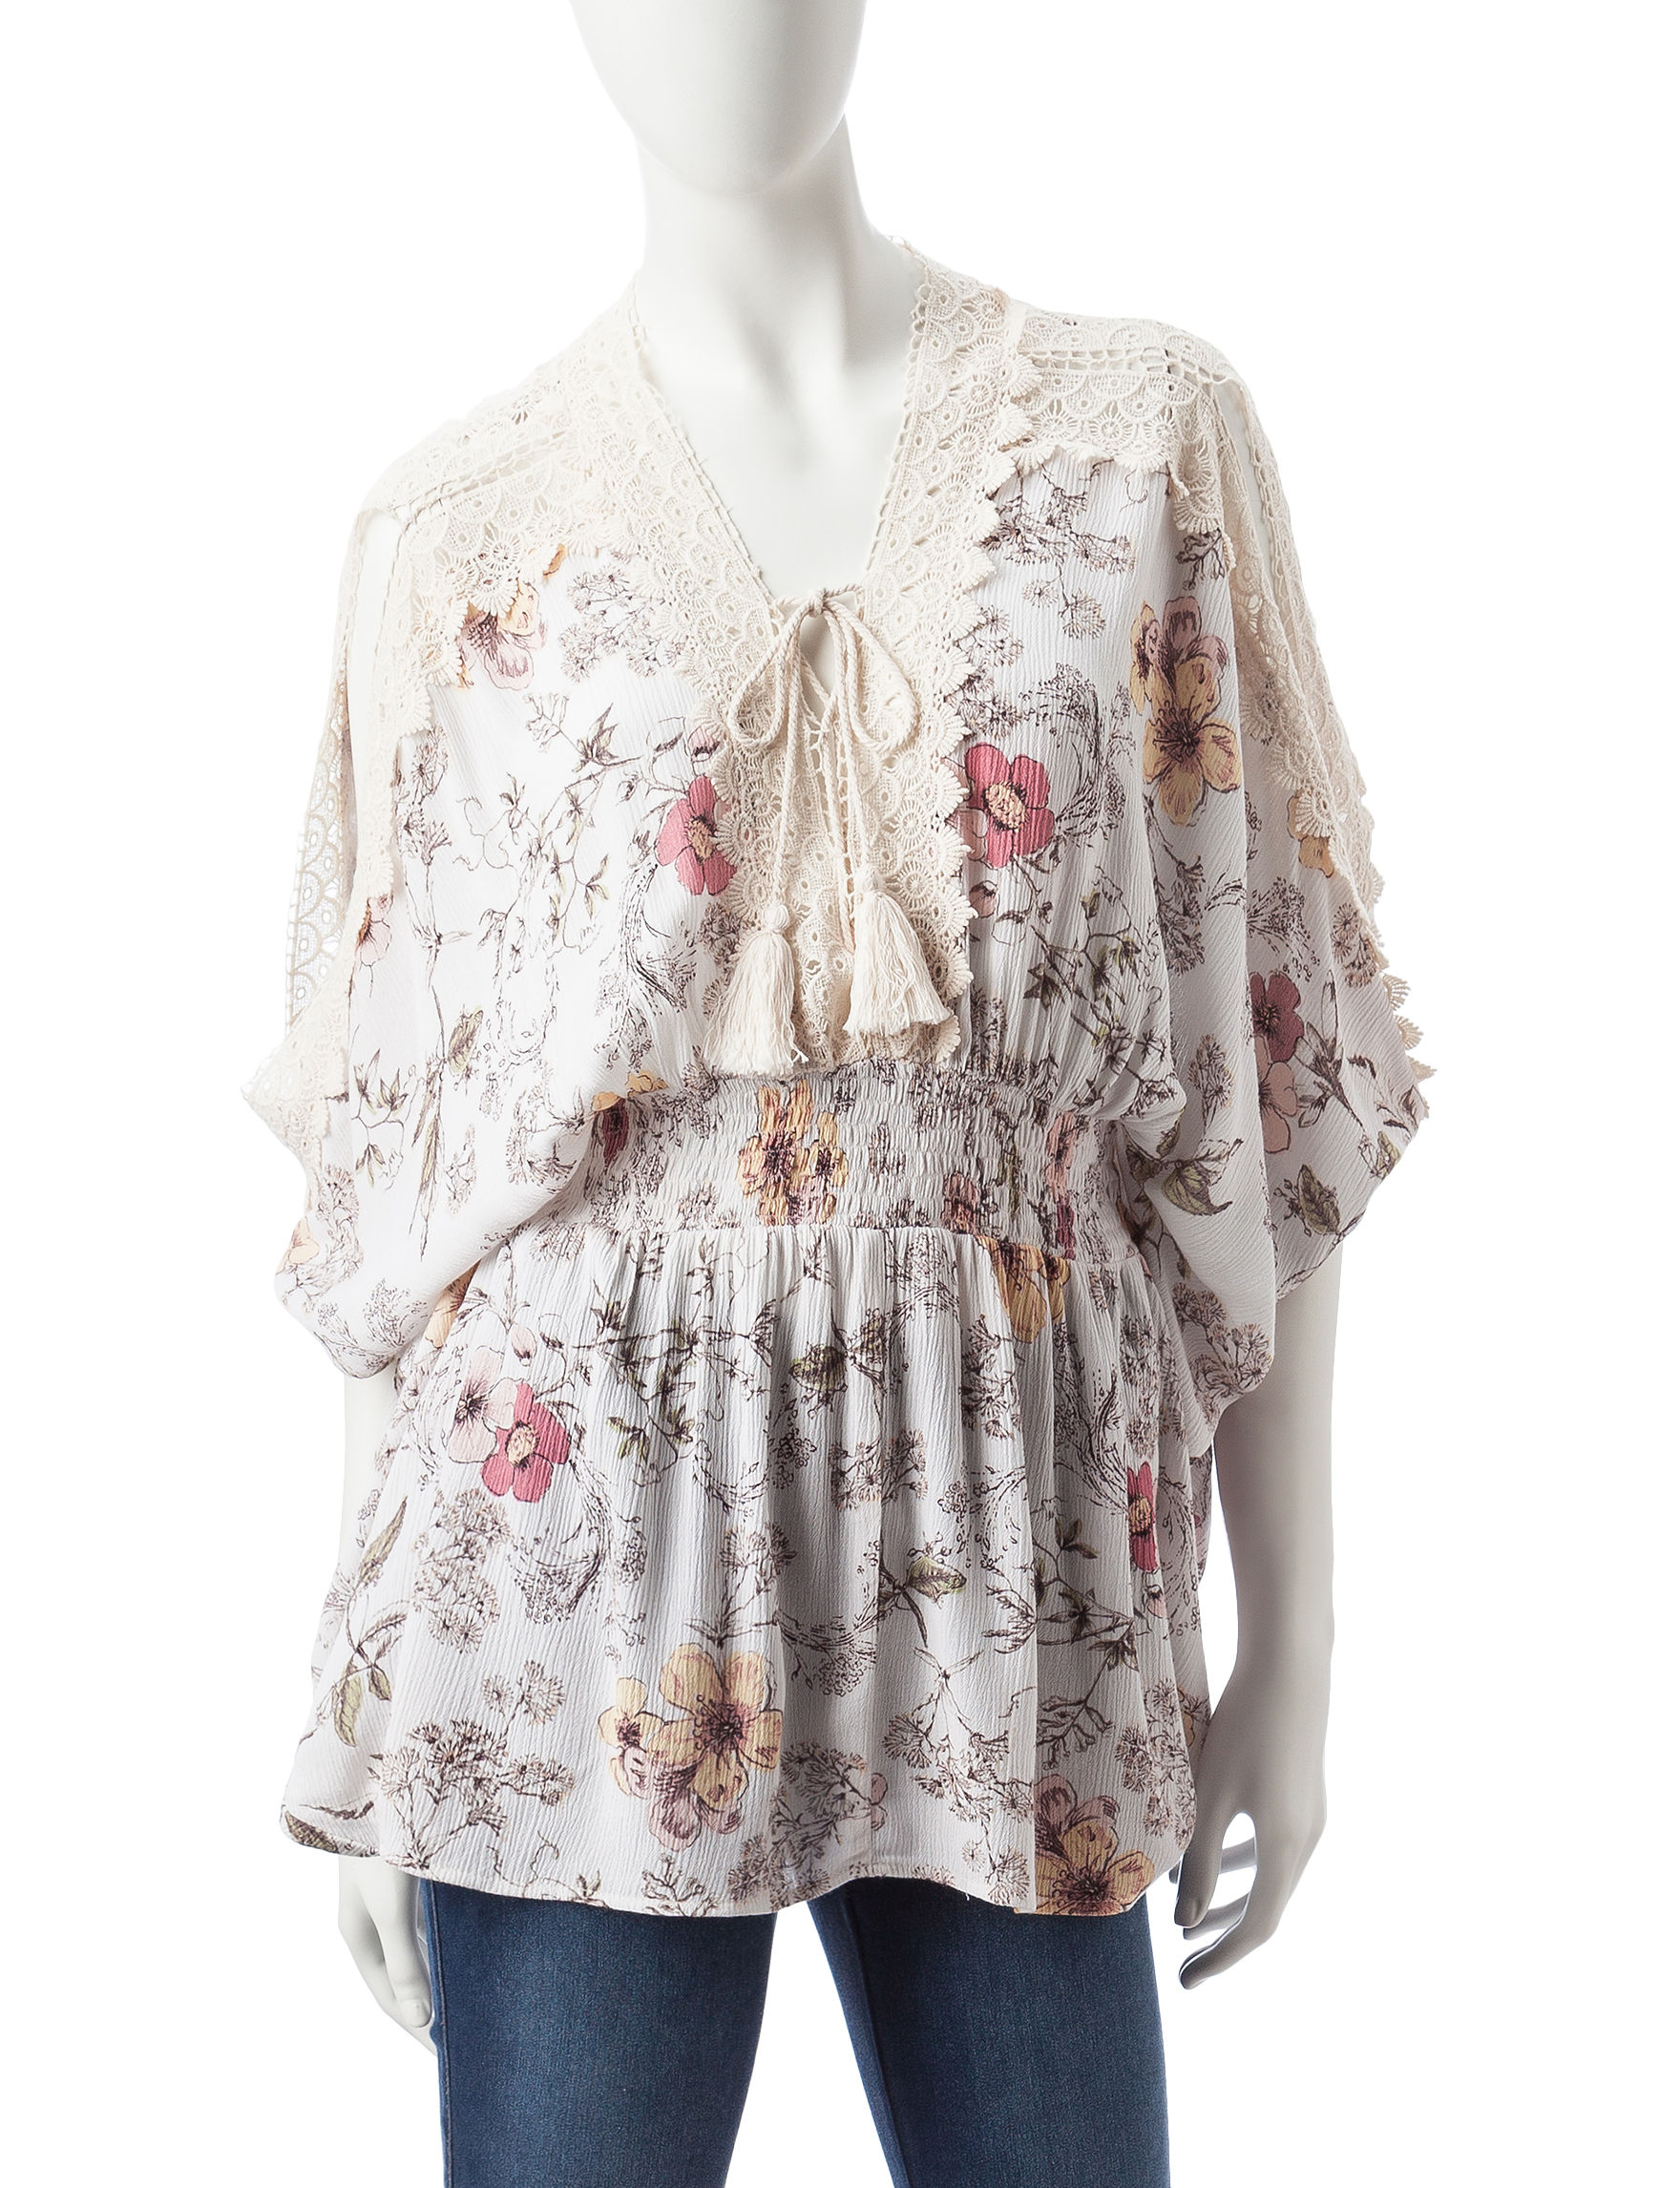 C + J Collections White Floral Shirts & Blouses